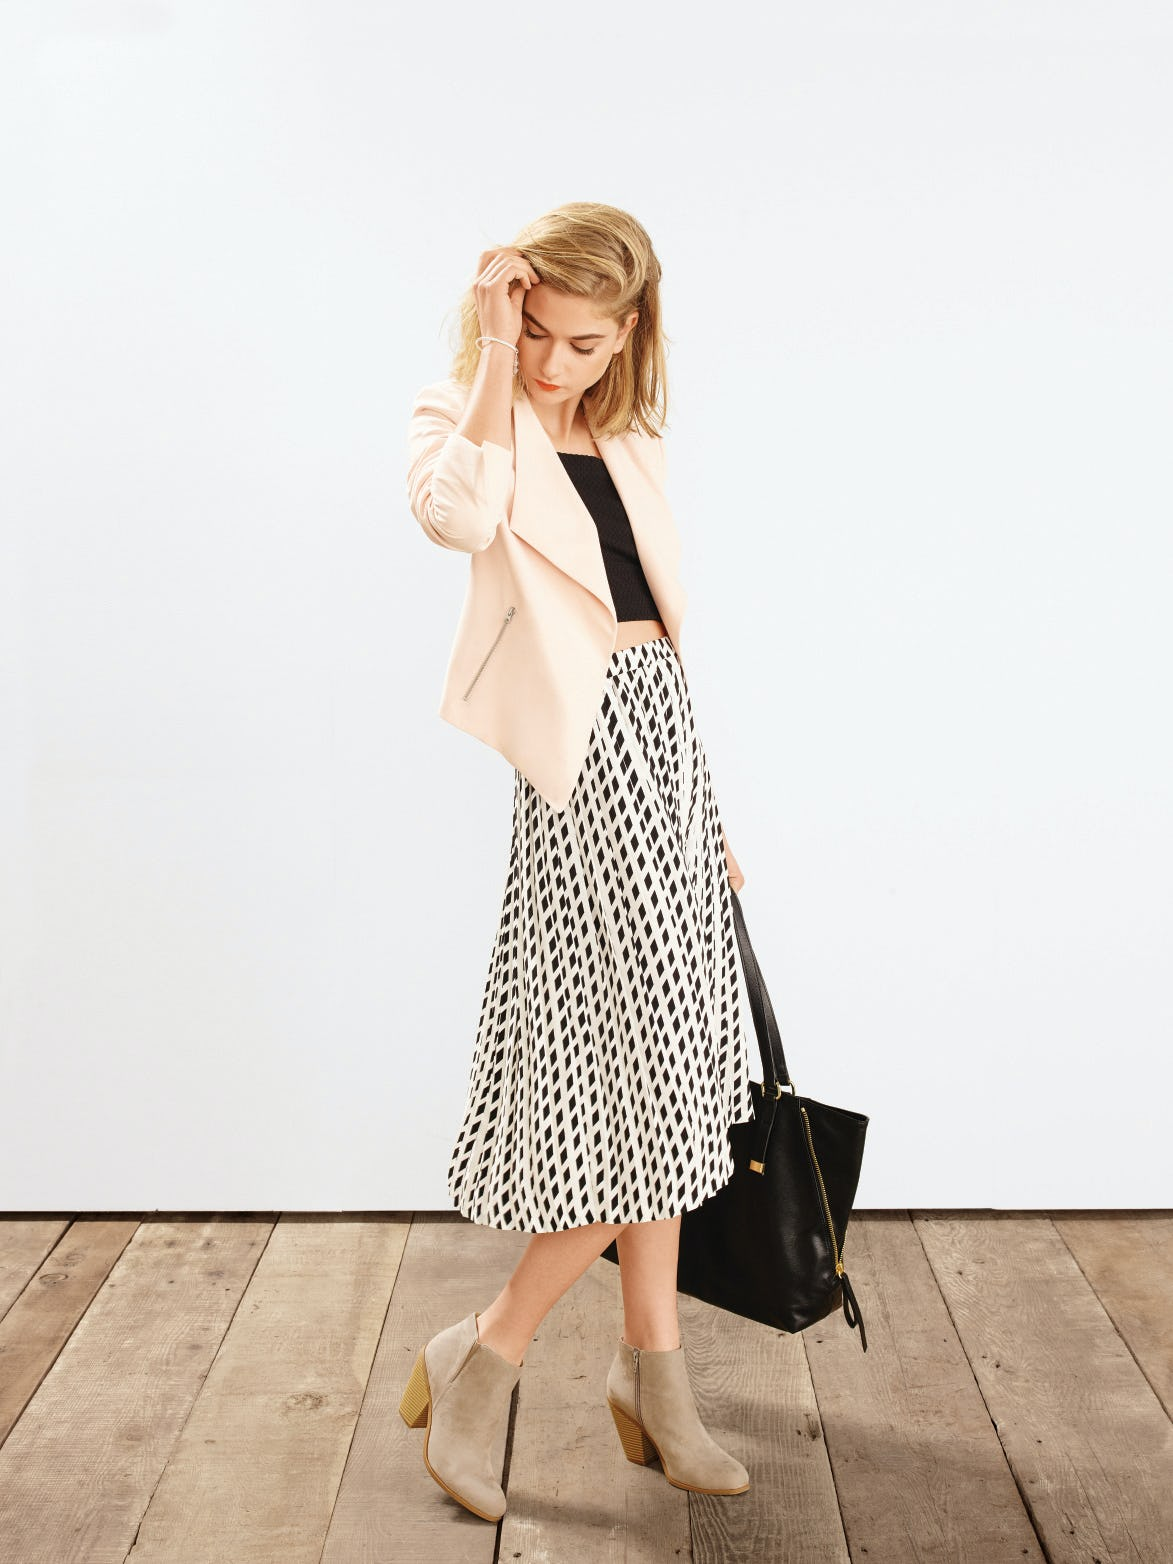 Bananarepublic factory spring151